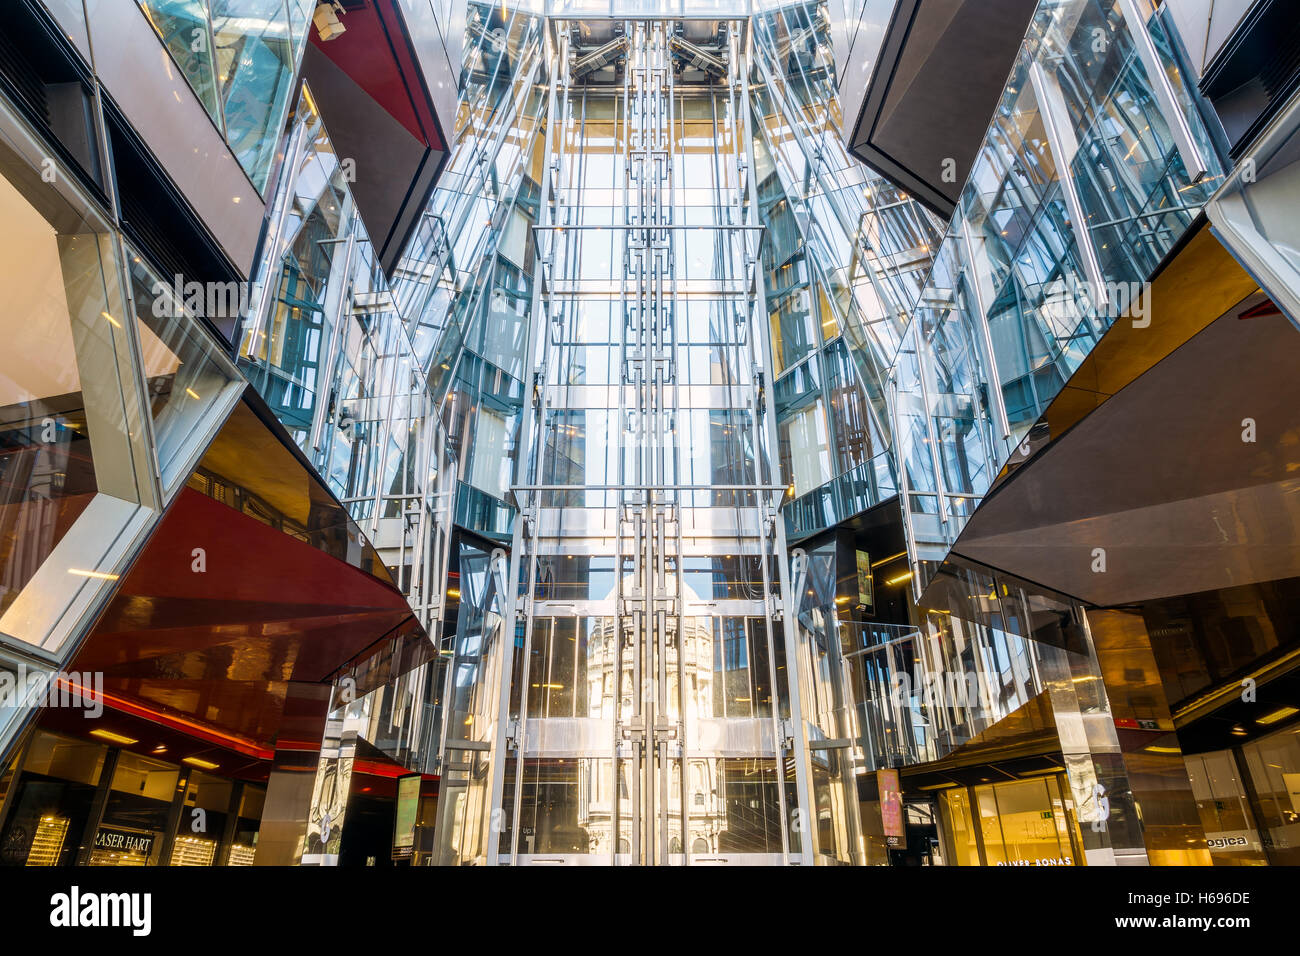 London, UK - August 06, 2016 - The central lifts of the shopping centre in One New Change building - Stock Image